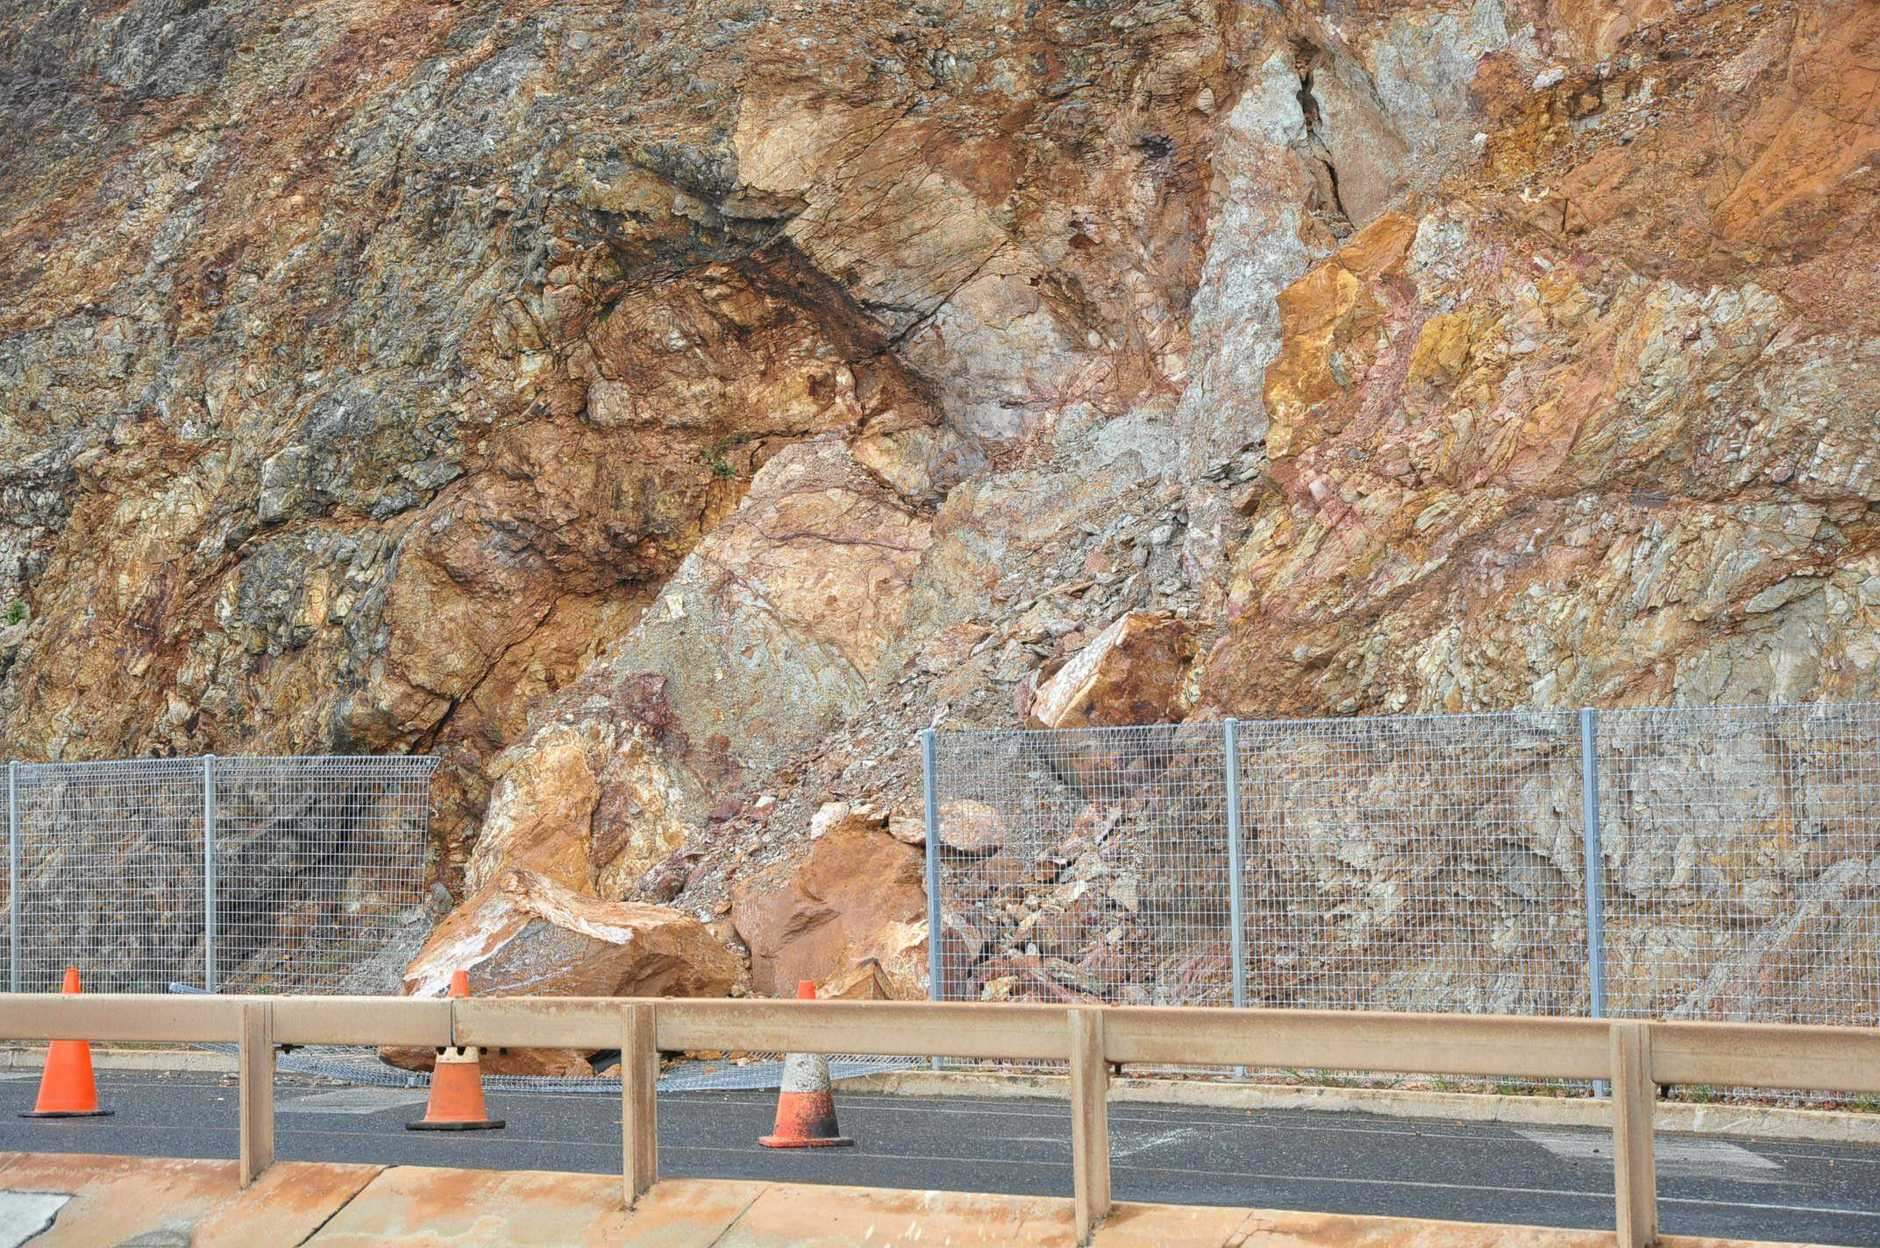 A massive boulder came tumbling down the cliff face off the Bluff on Farnborough Road